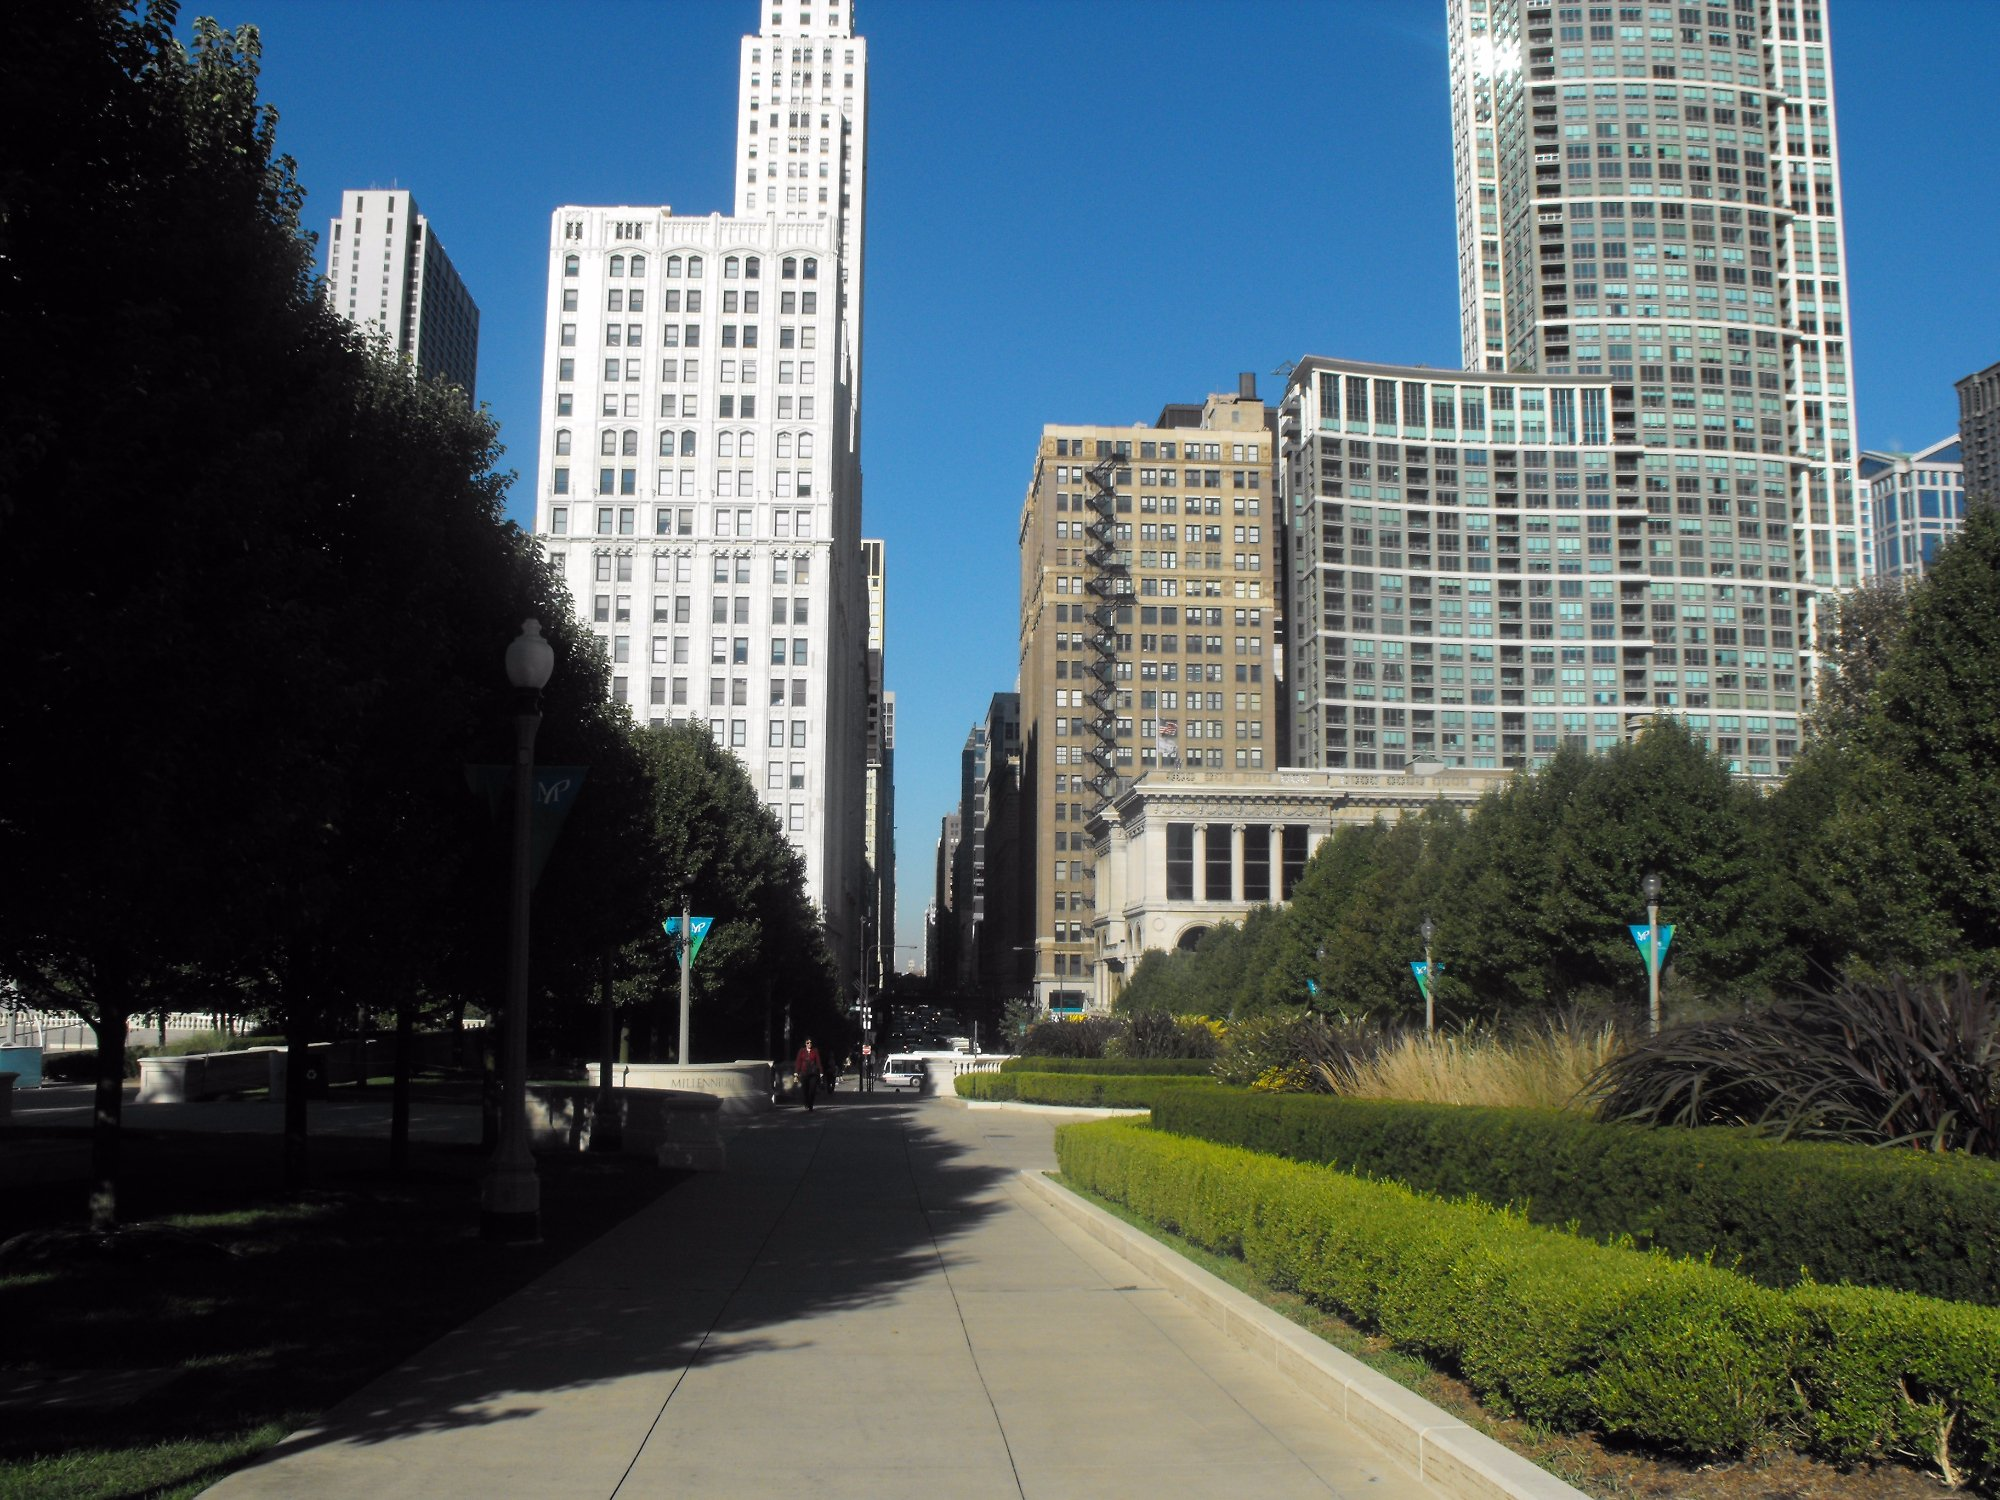 Michigan Ave sidewalk on Millennium Park